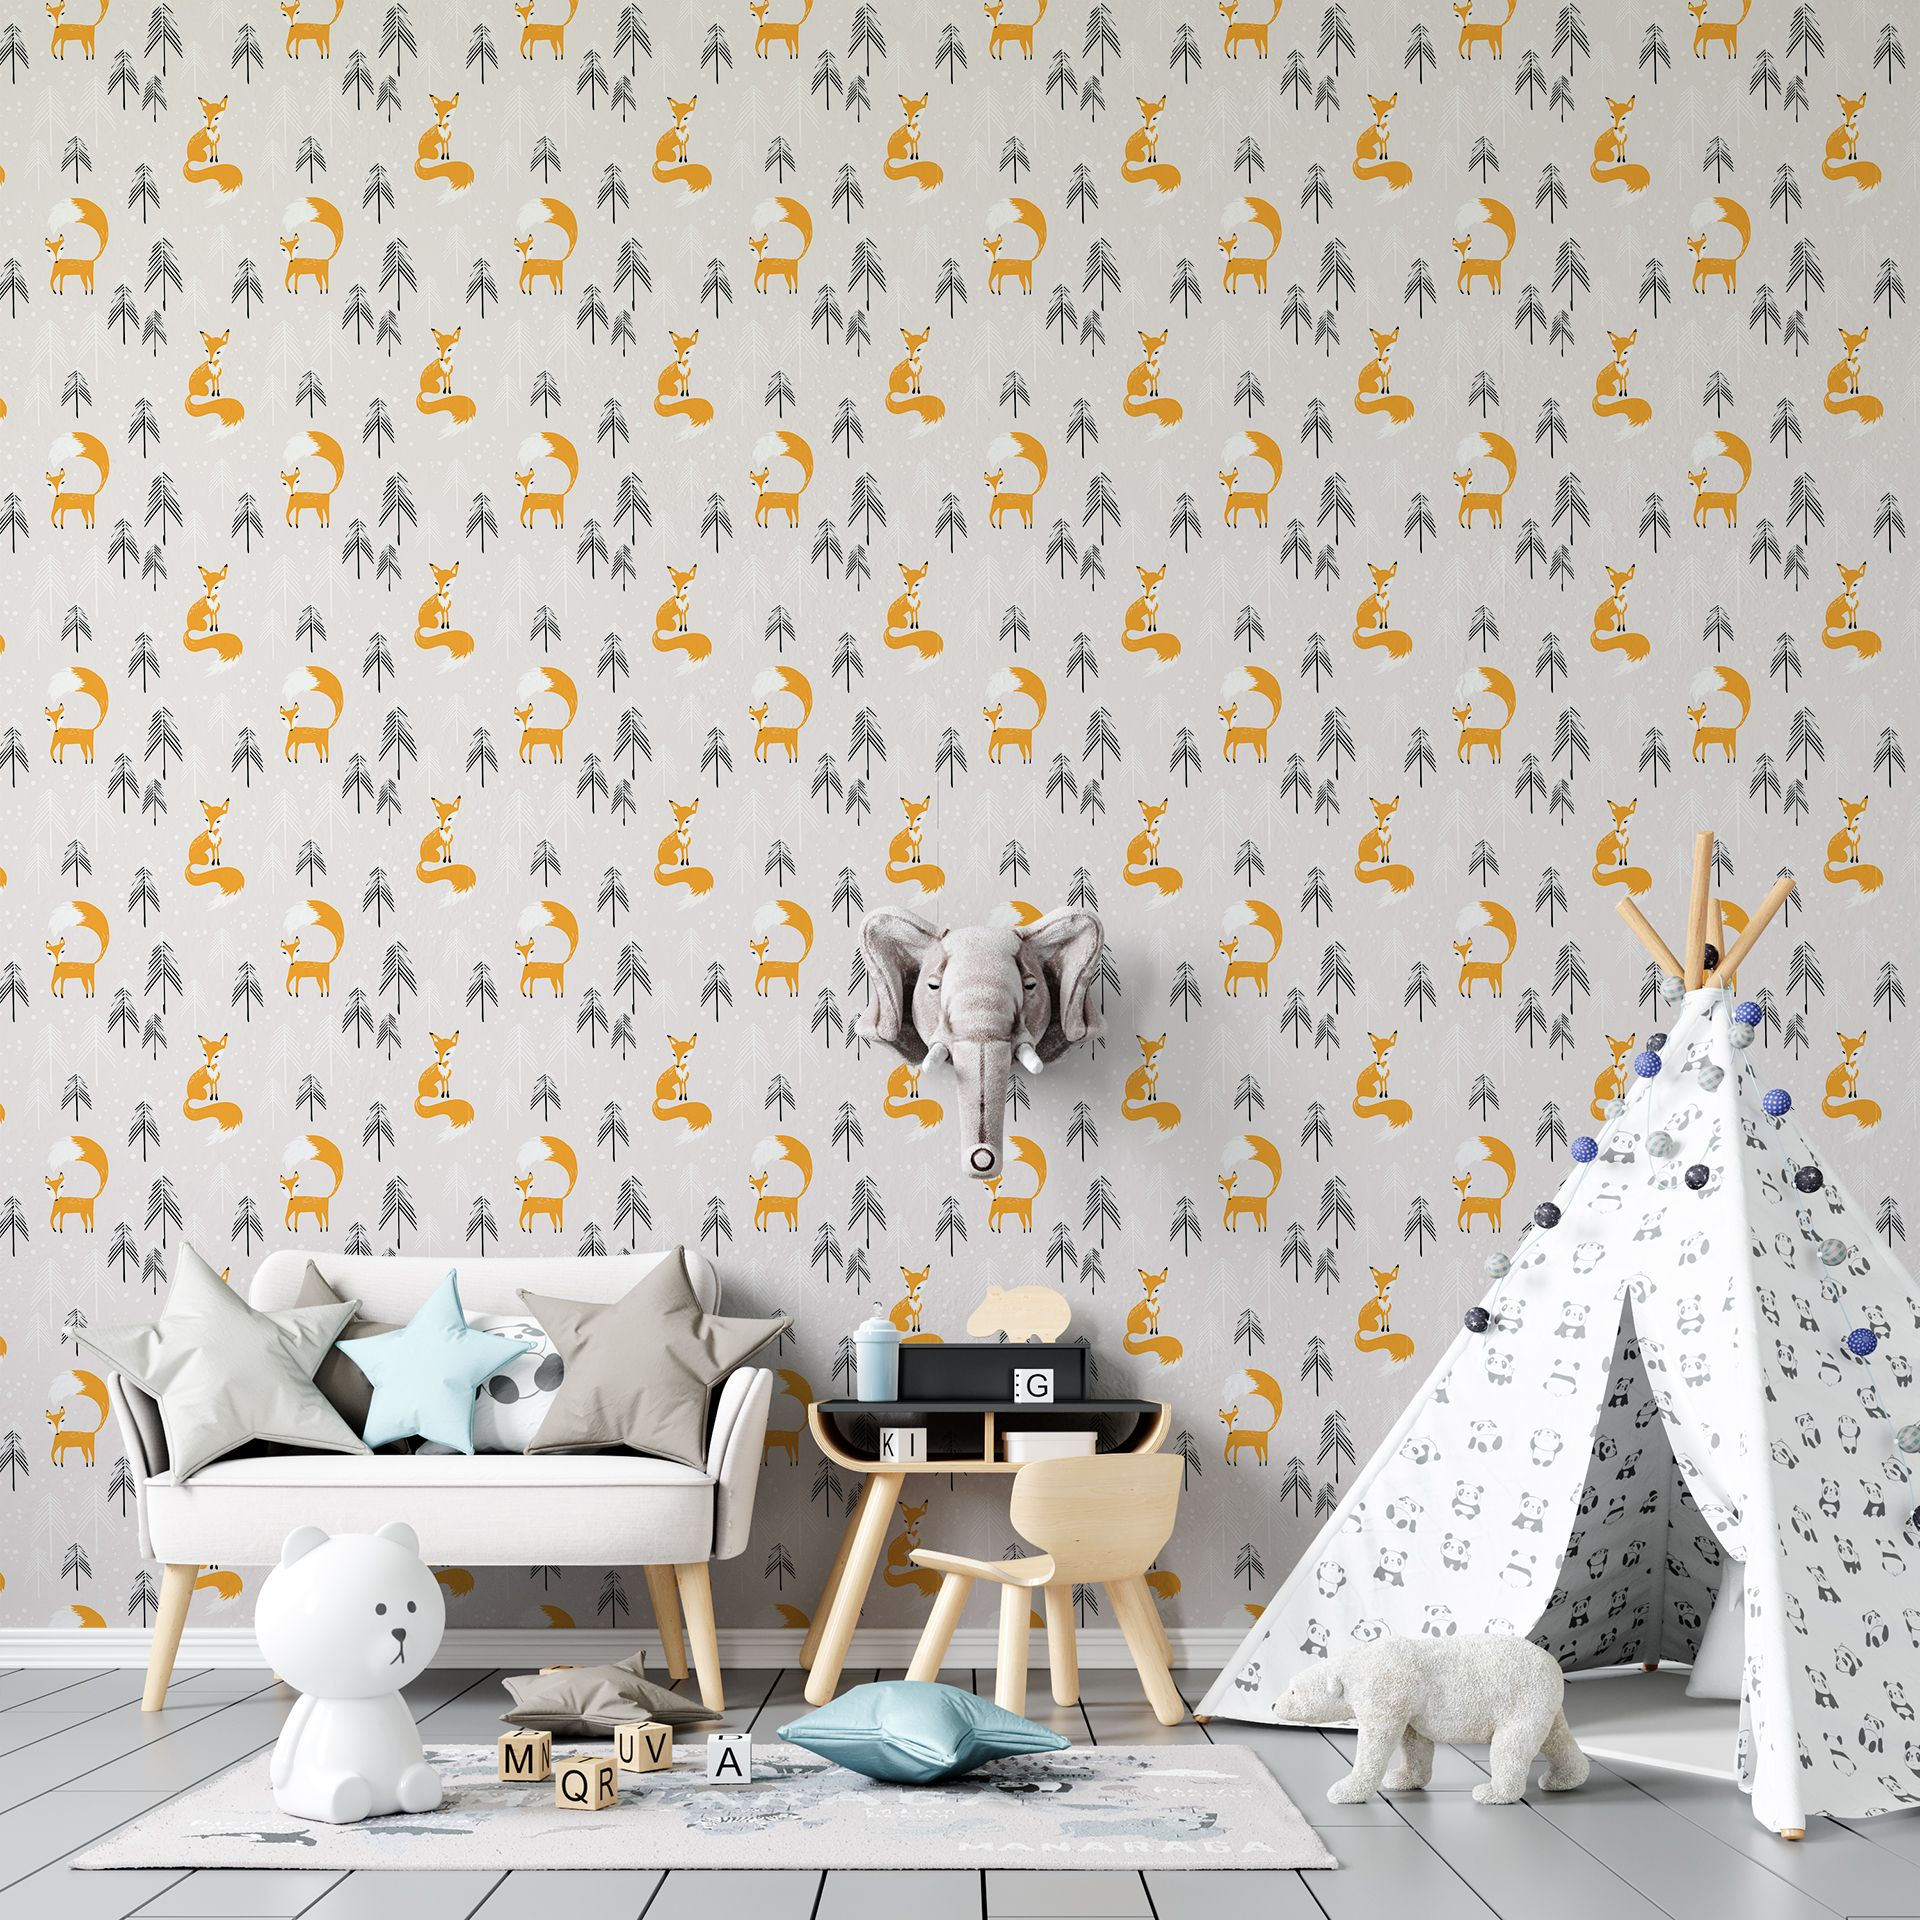 Get these, Adhesive, Hand Drawn Removable Wallpaper. Environmentally conscious WallaWall Wallpaper, it will give the rooms in your home a colorful meaning. You can get these by clicking the pin.😎👀💯😎🙌 #wallpaper #wallpapers #interiordesign #d #wallpapermurah #wallpaperdinding #homedecor #art #design #wallpapersticker #interior #love #photography #wallpaperdecor #wallsticker #like #anime #walldecor #dekorasirumah #aesthetic #instagram #follow #decor #wallcovering #wallpaperjakarta #nature #t